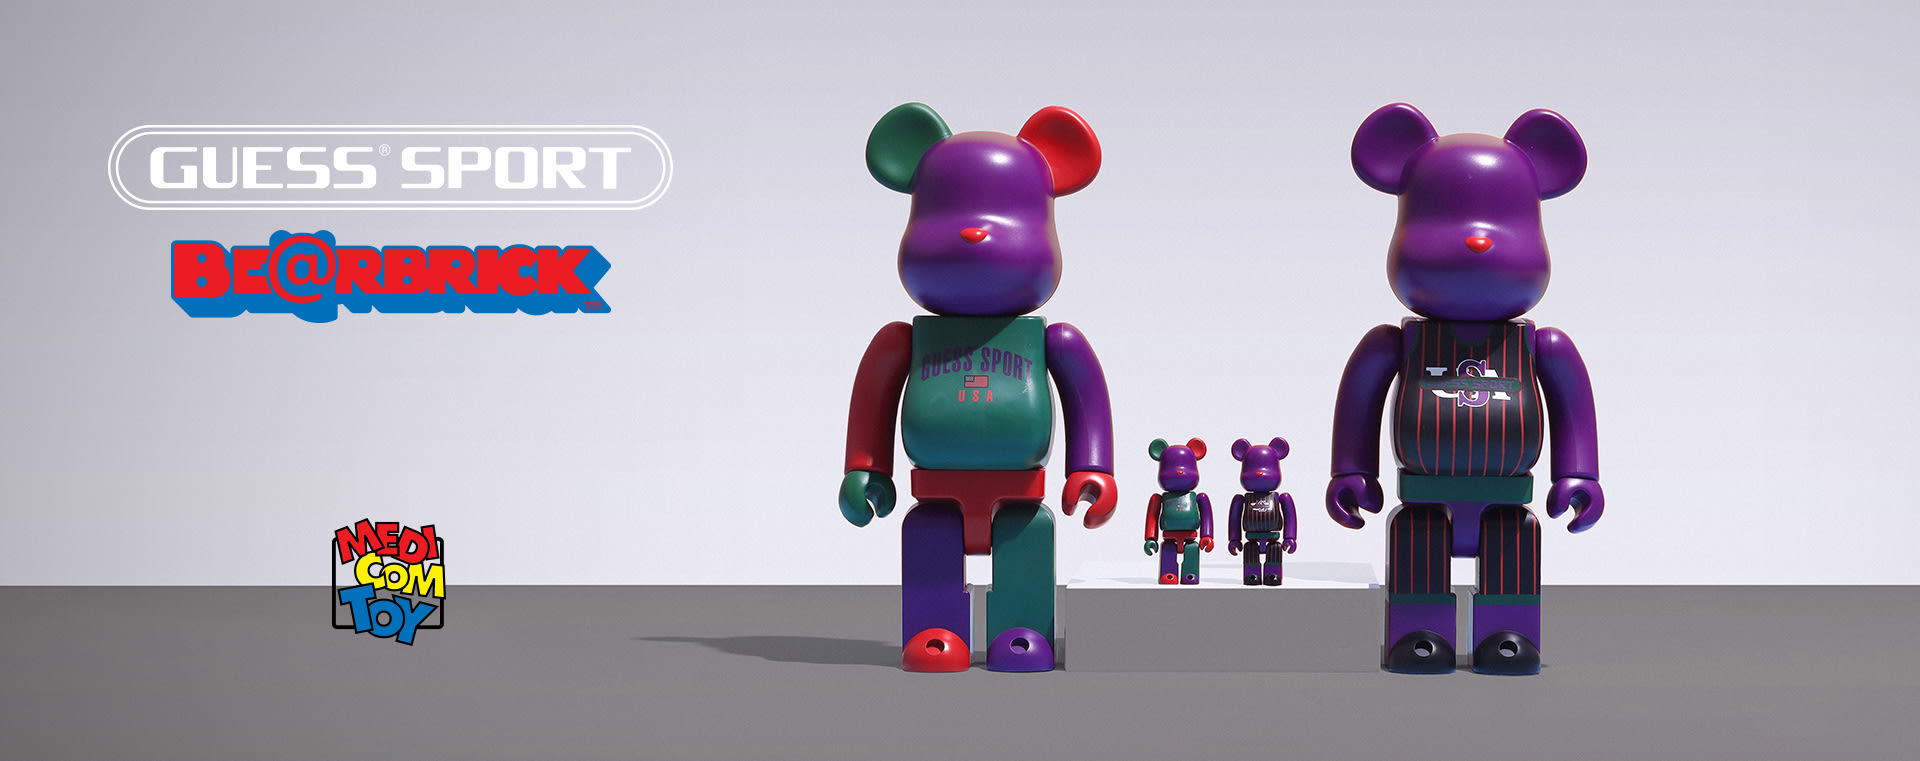 GUESS SPORT Bearbricks